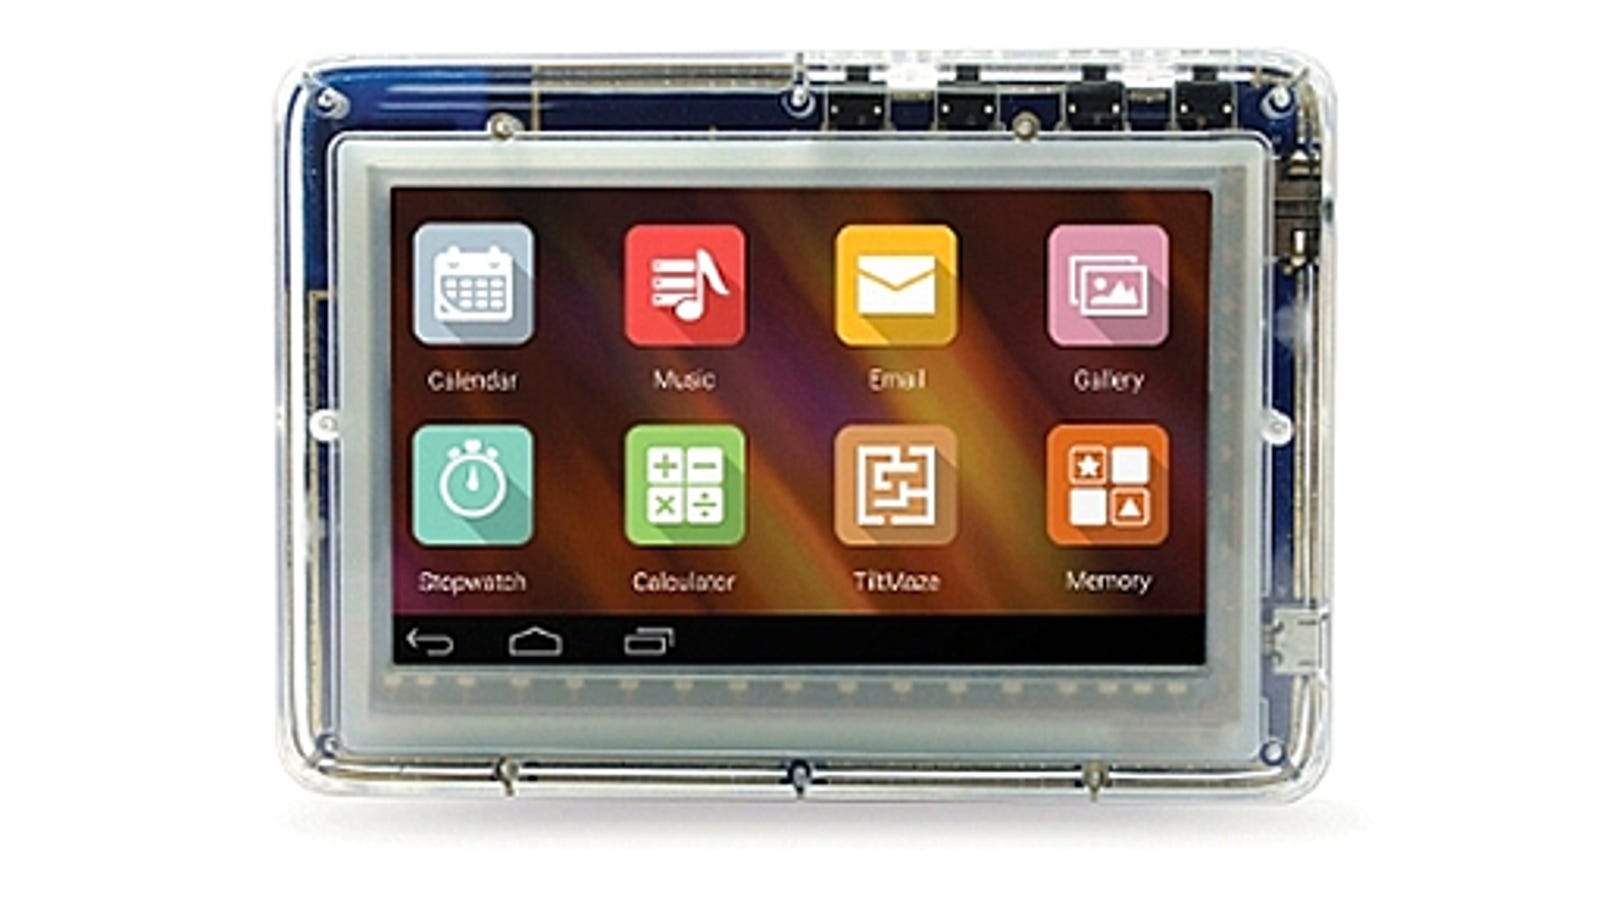 This Locked-Down Prison Tablet Makes iOS Seem Open